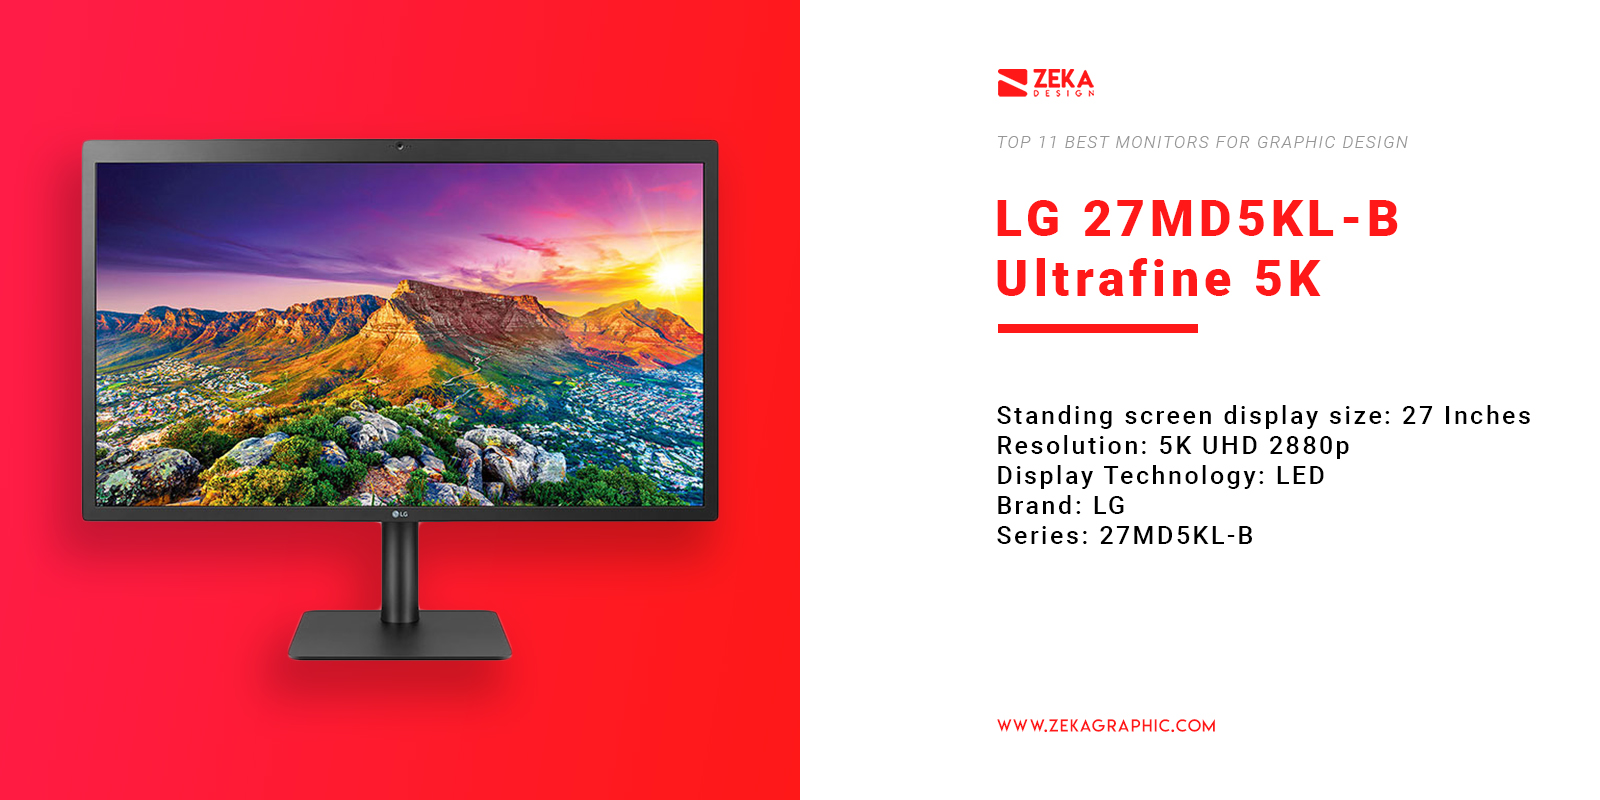 LG 27MD5KL-B Ultrafine 5K Monitor for Graphic Design